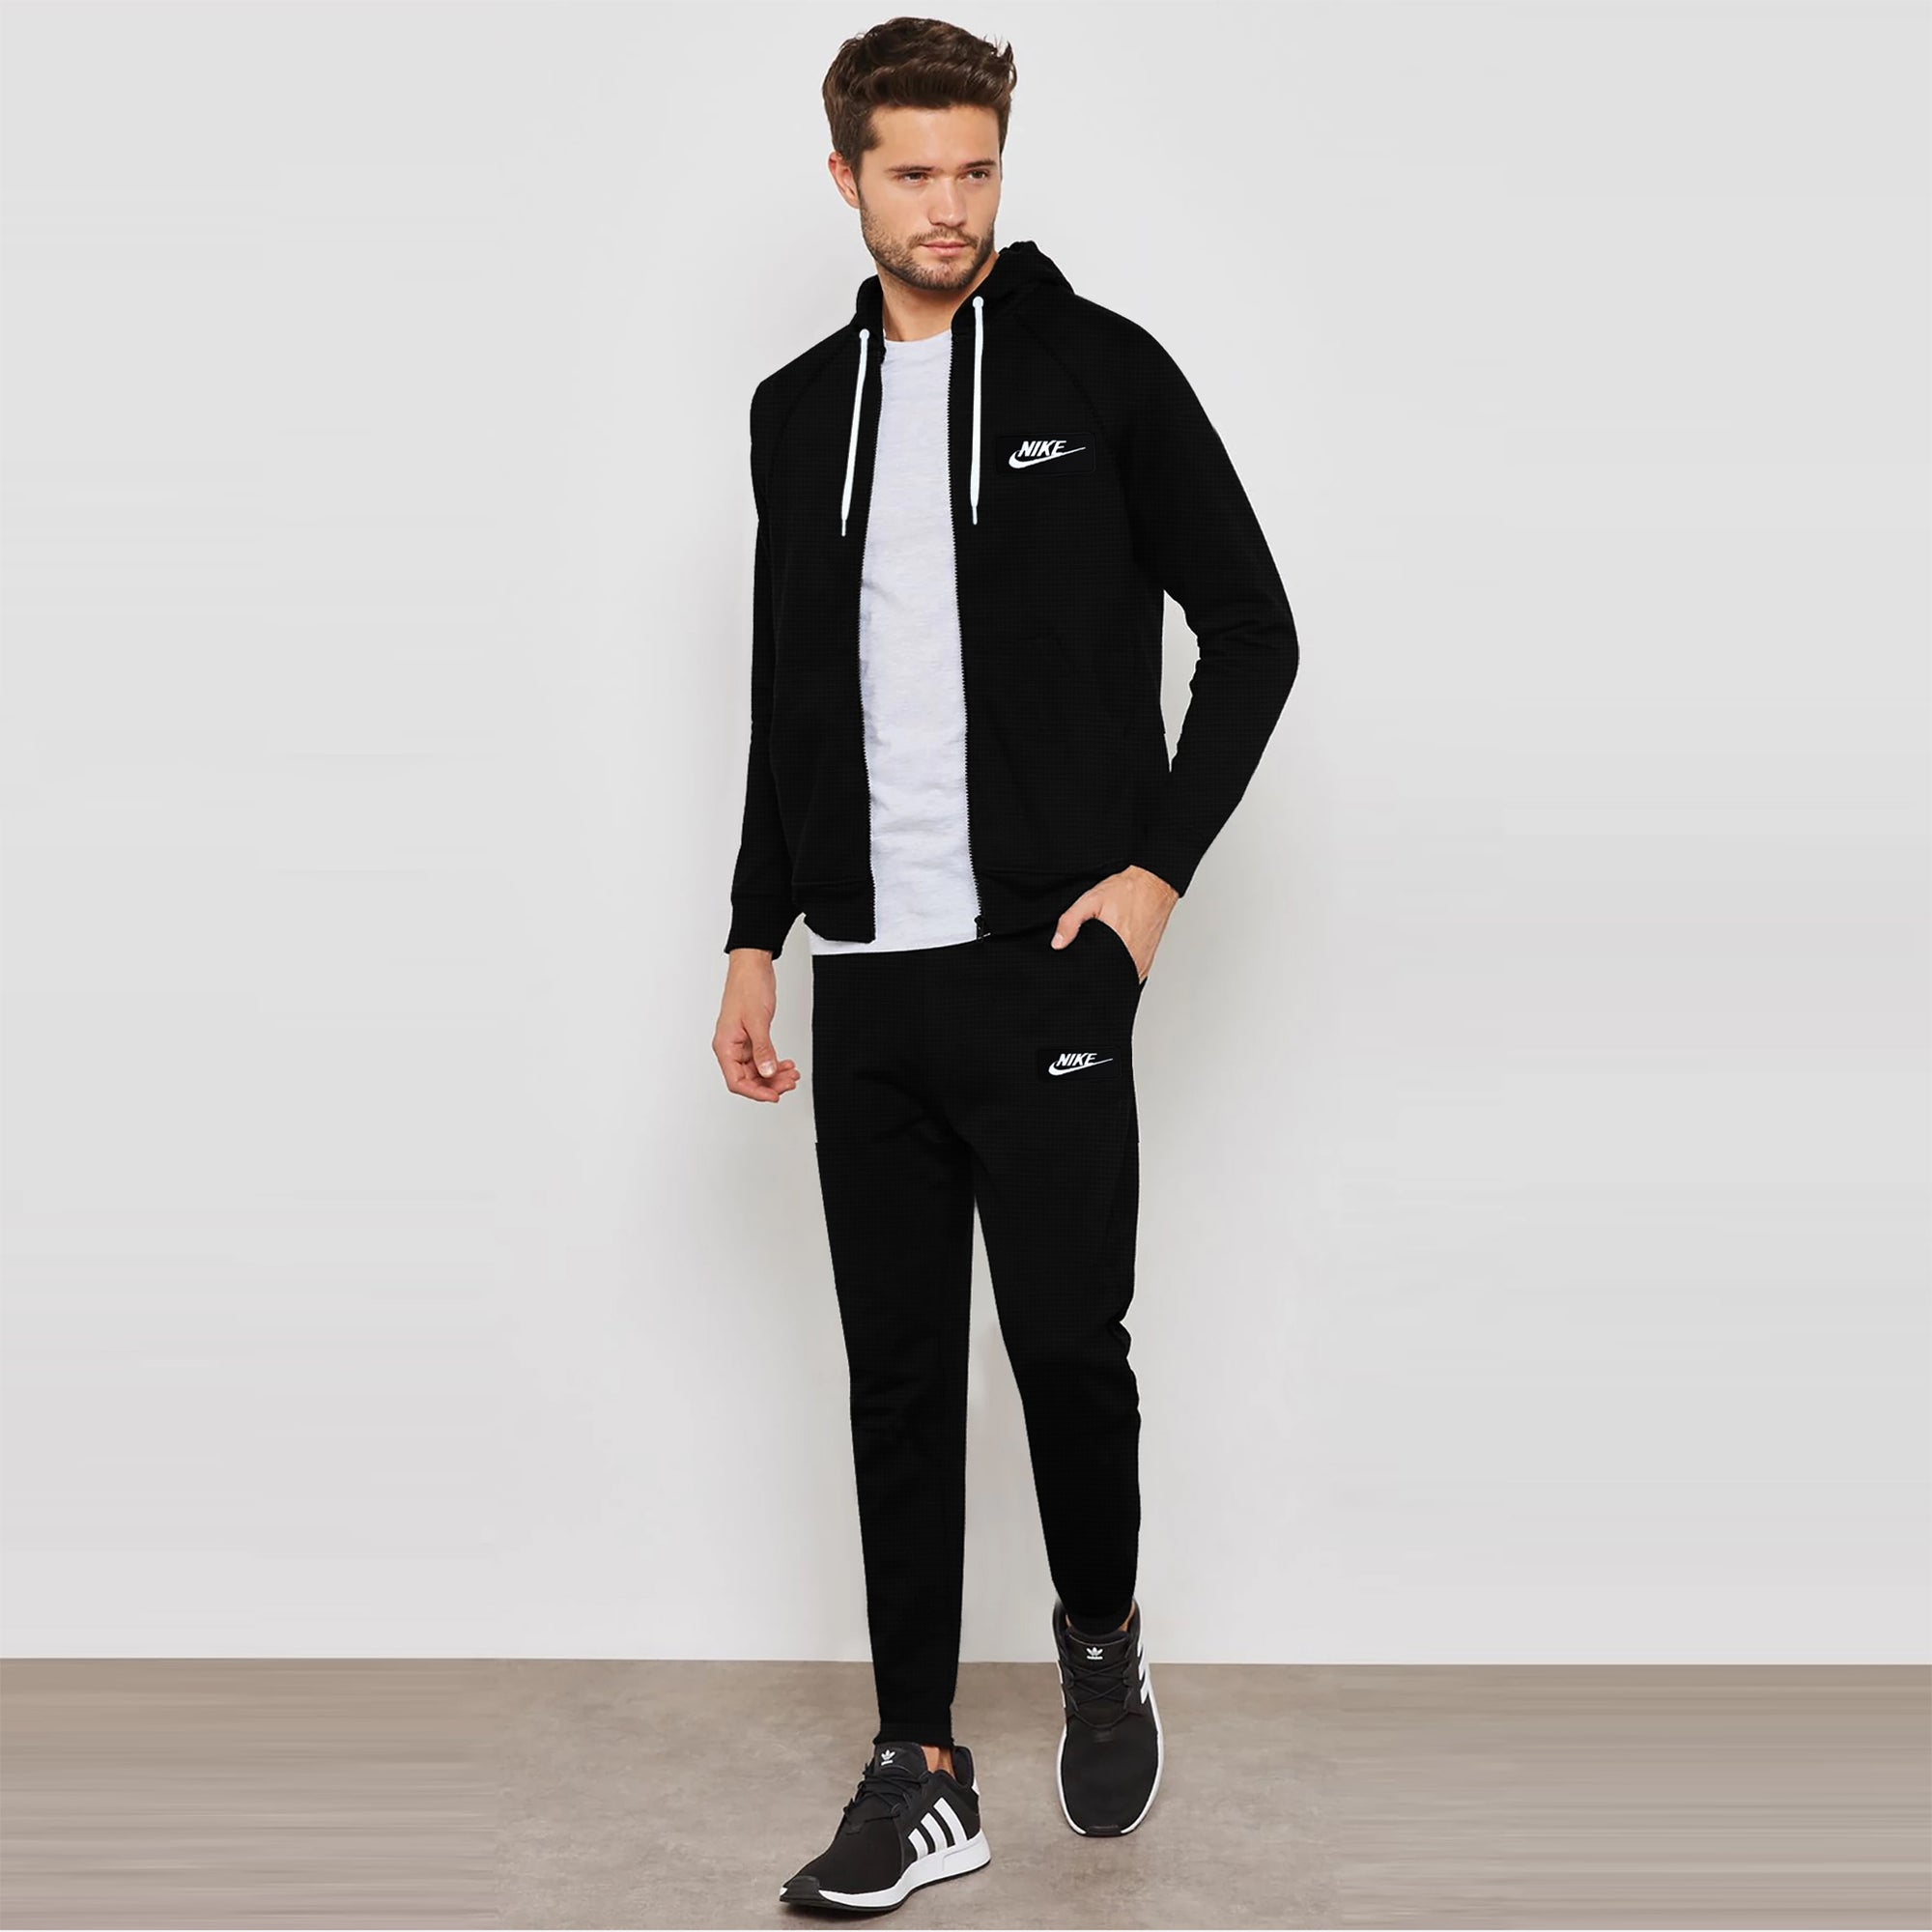 NK Slim Fit Raglan Sleeve Black & White Embroidery Thermal Zipper Track Suit For Men-Black Thermal-SP1052